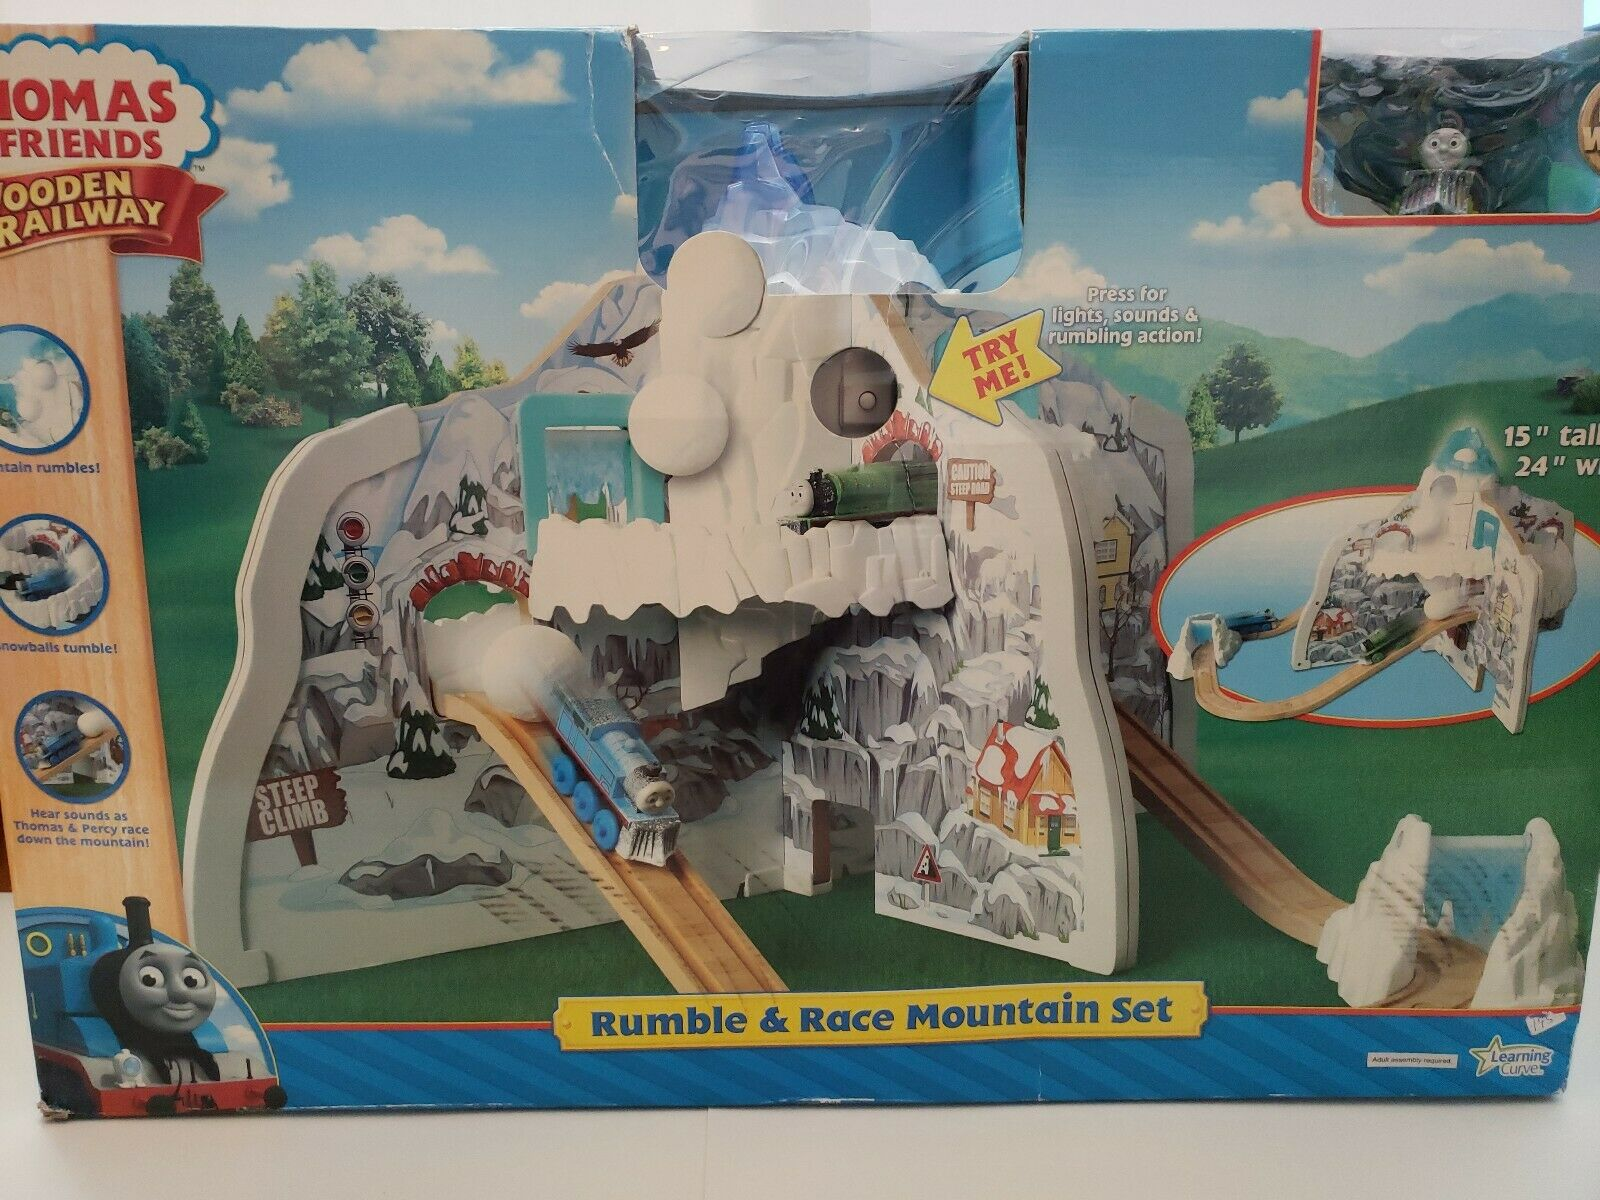 NEW Thomas The Train Wooden Railway - Rumble And Race Mountain Set